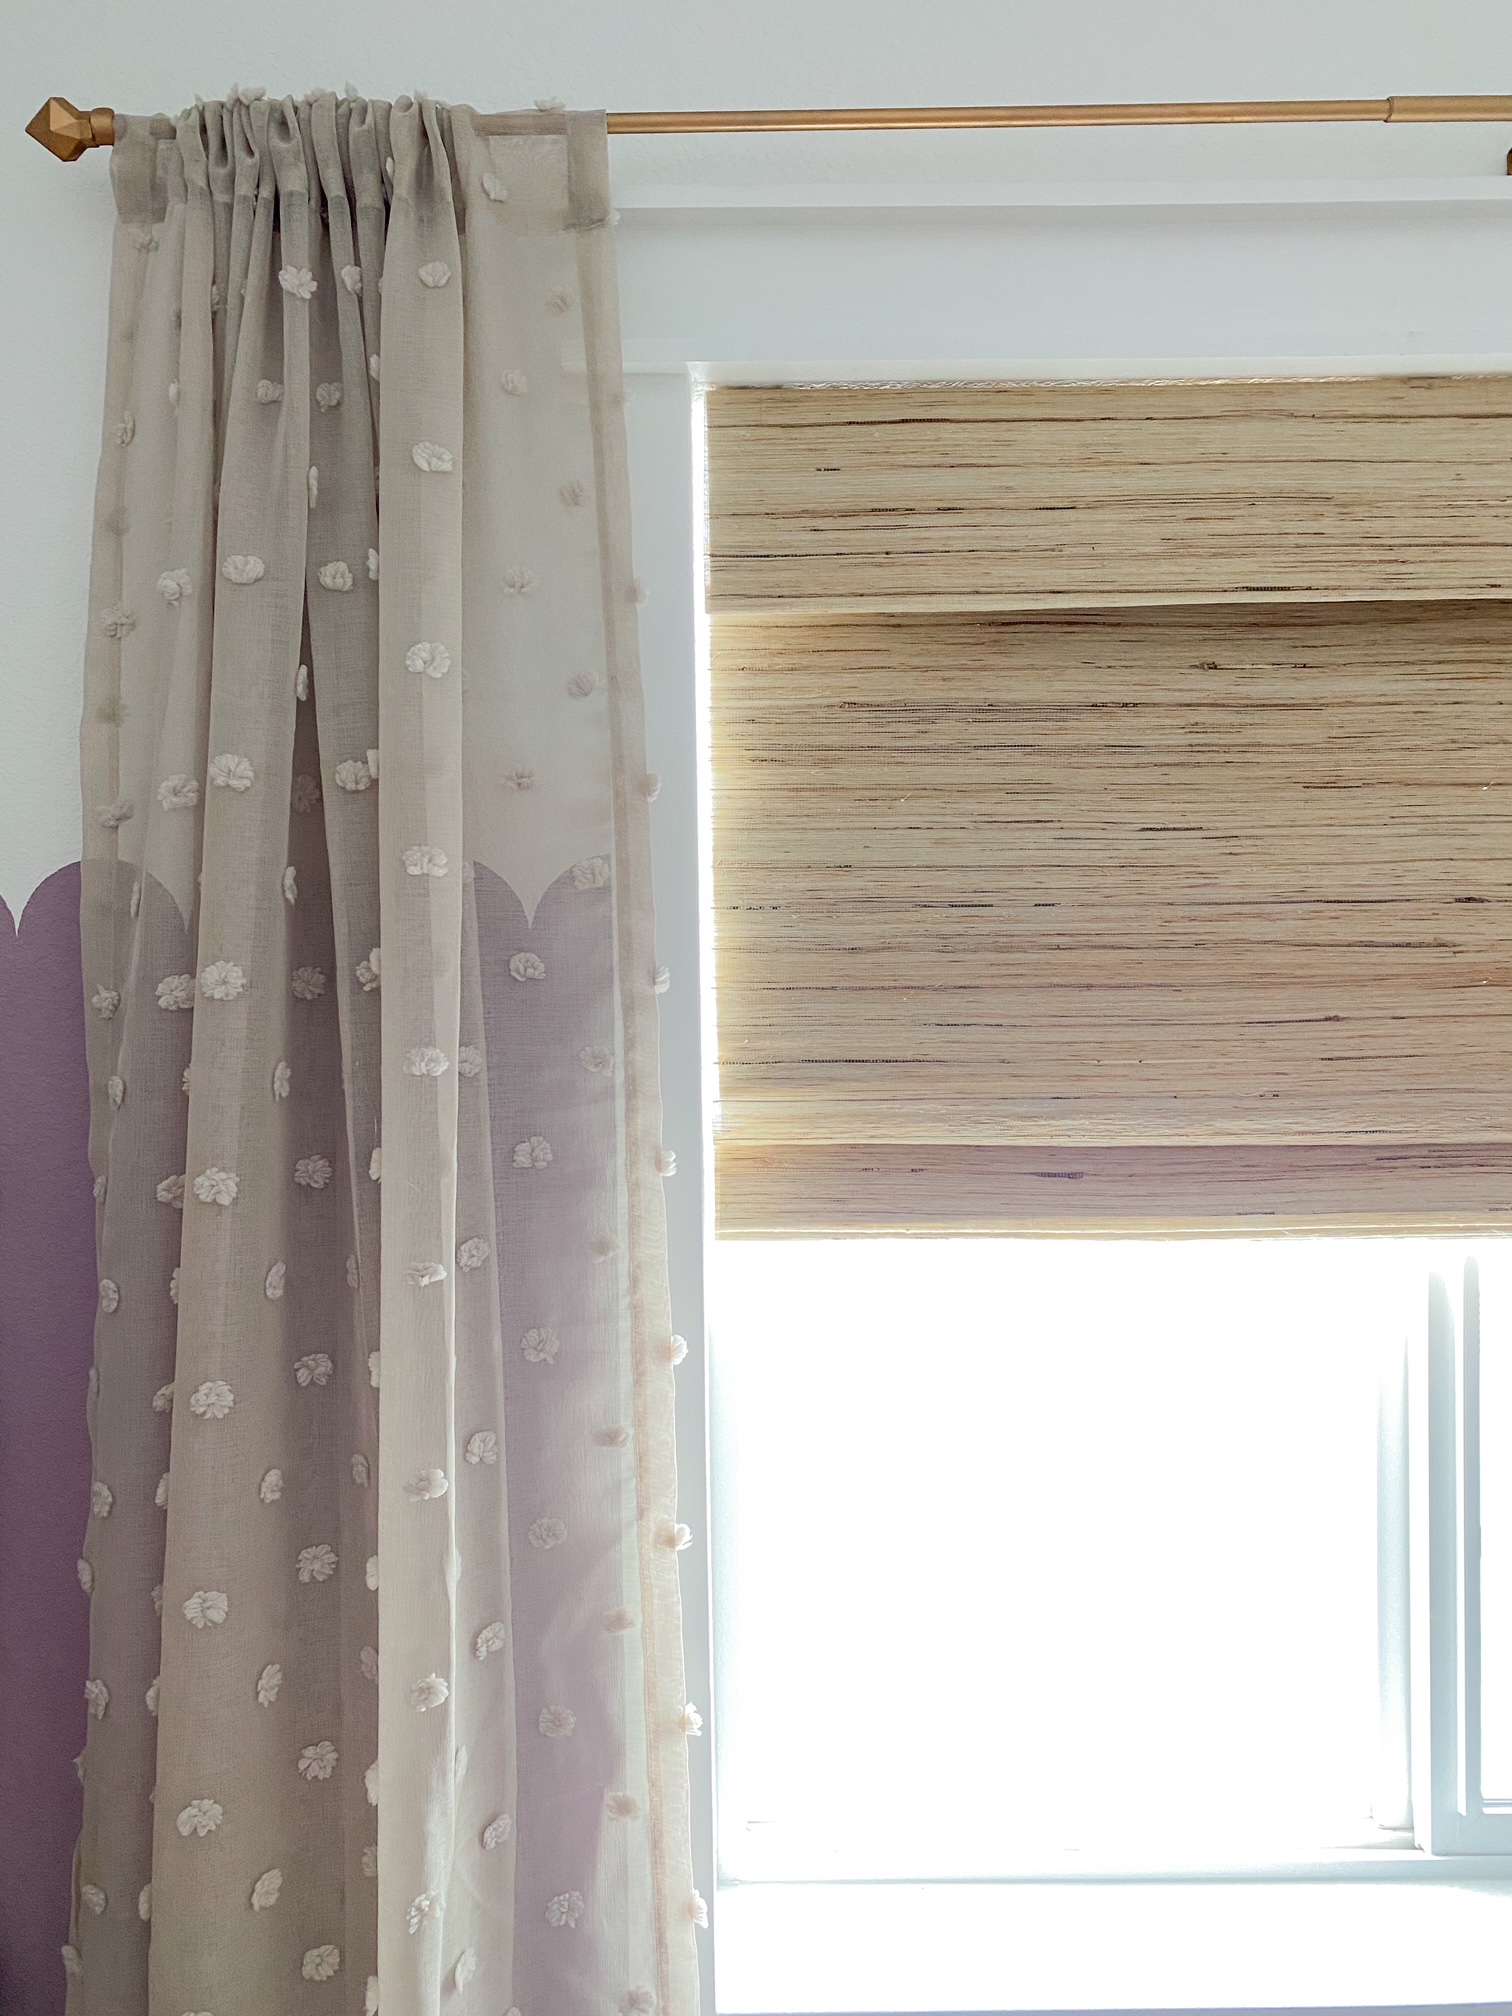 Affordable Amazon curtains in nursery with a woven roman shade!